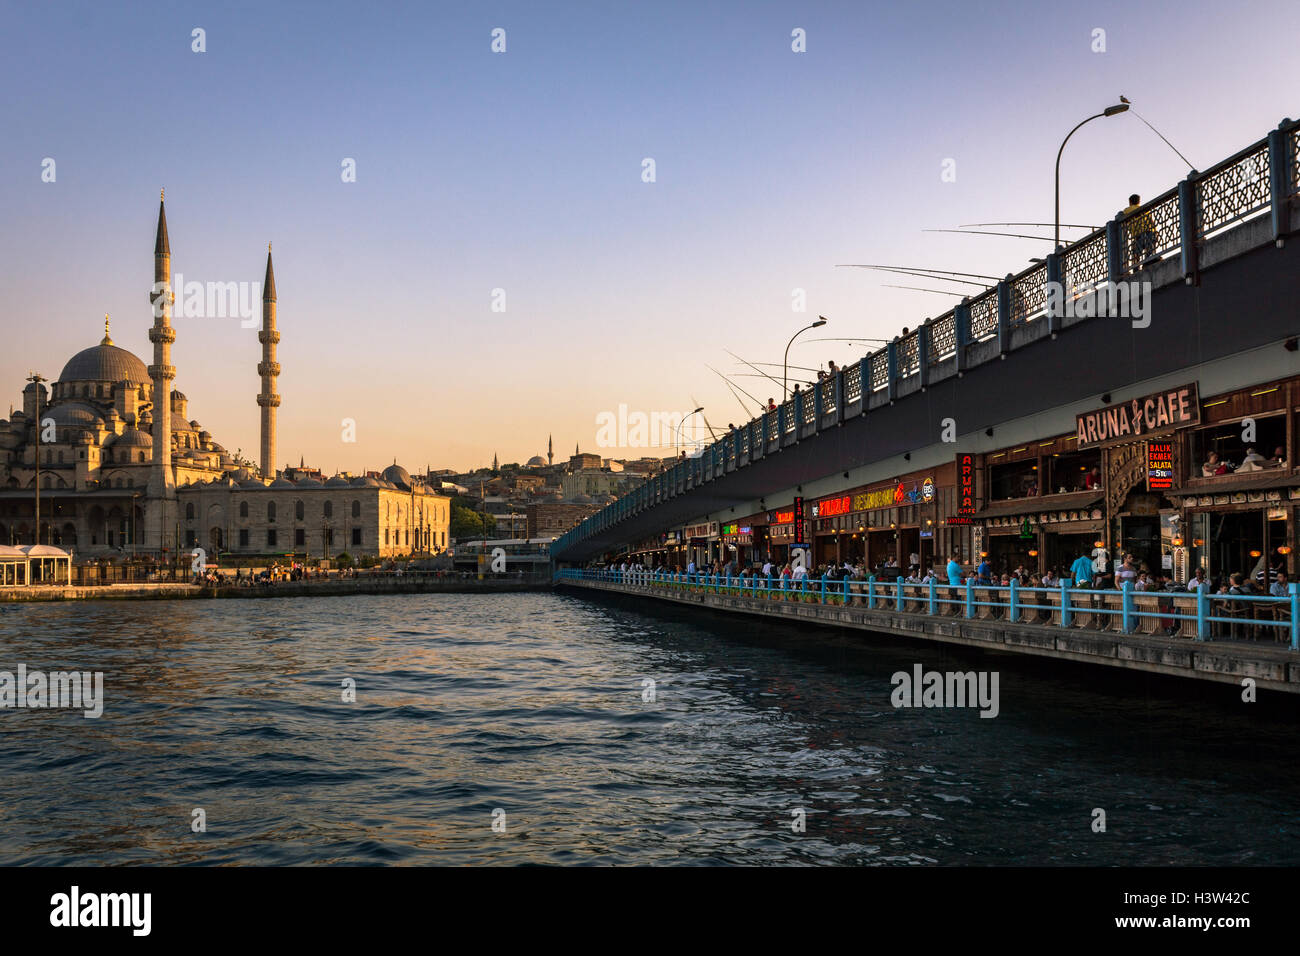 The view afforded from Galata bridge, above and below, with the New Mosque in the background, in Istanbul (Turkey) - Stock Image